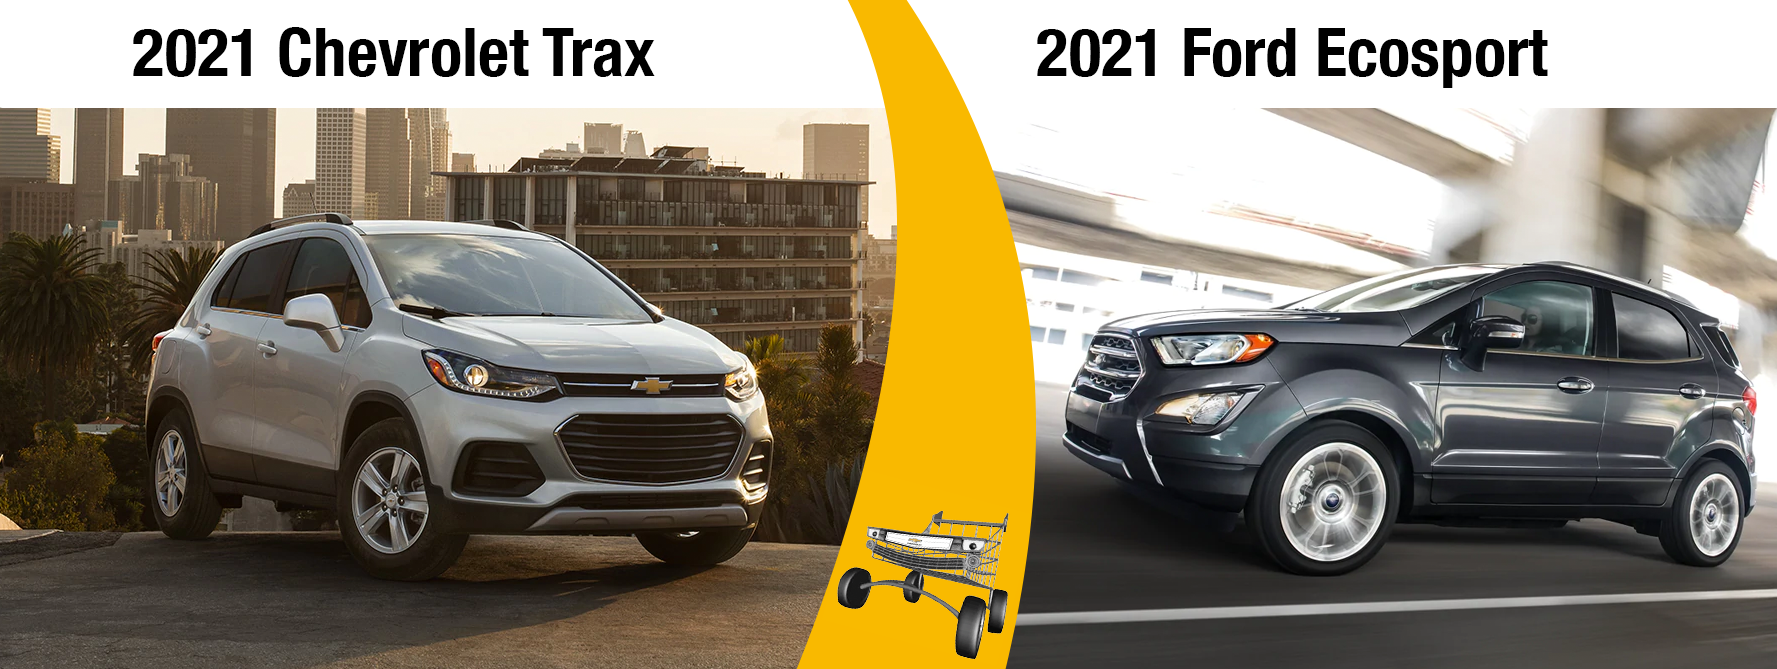 2021 Chevy Trax vs 2021 Ford EcoSport Fuel Economy and Size